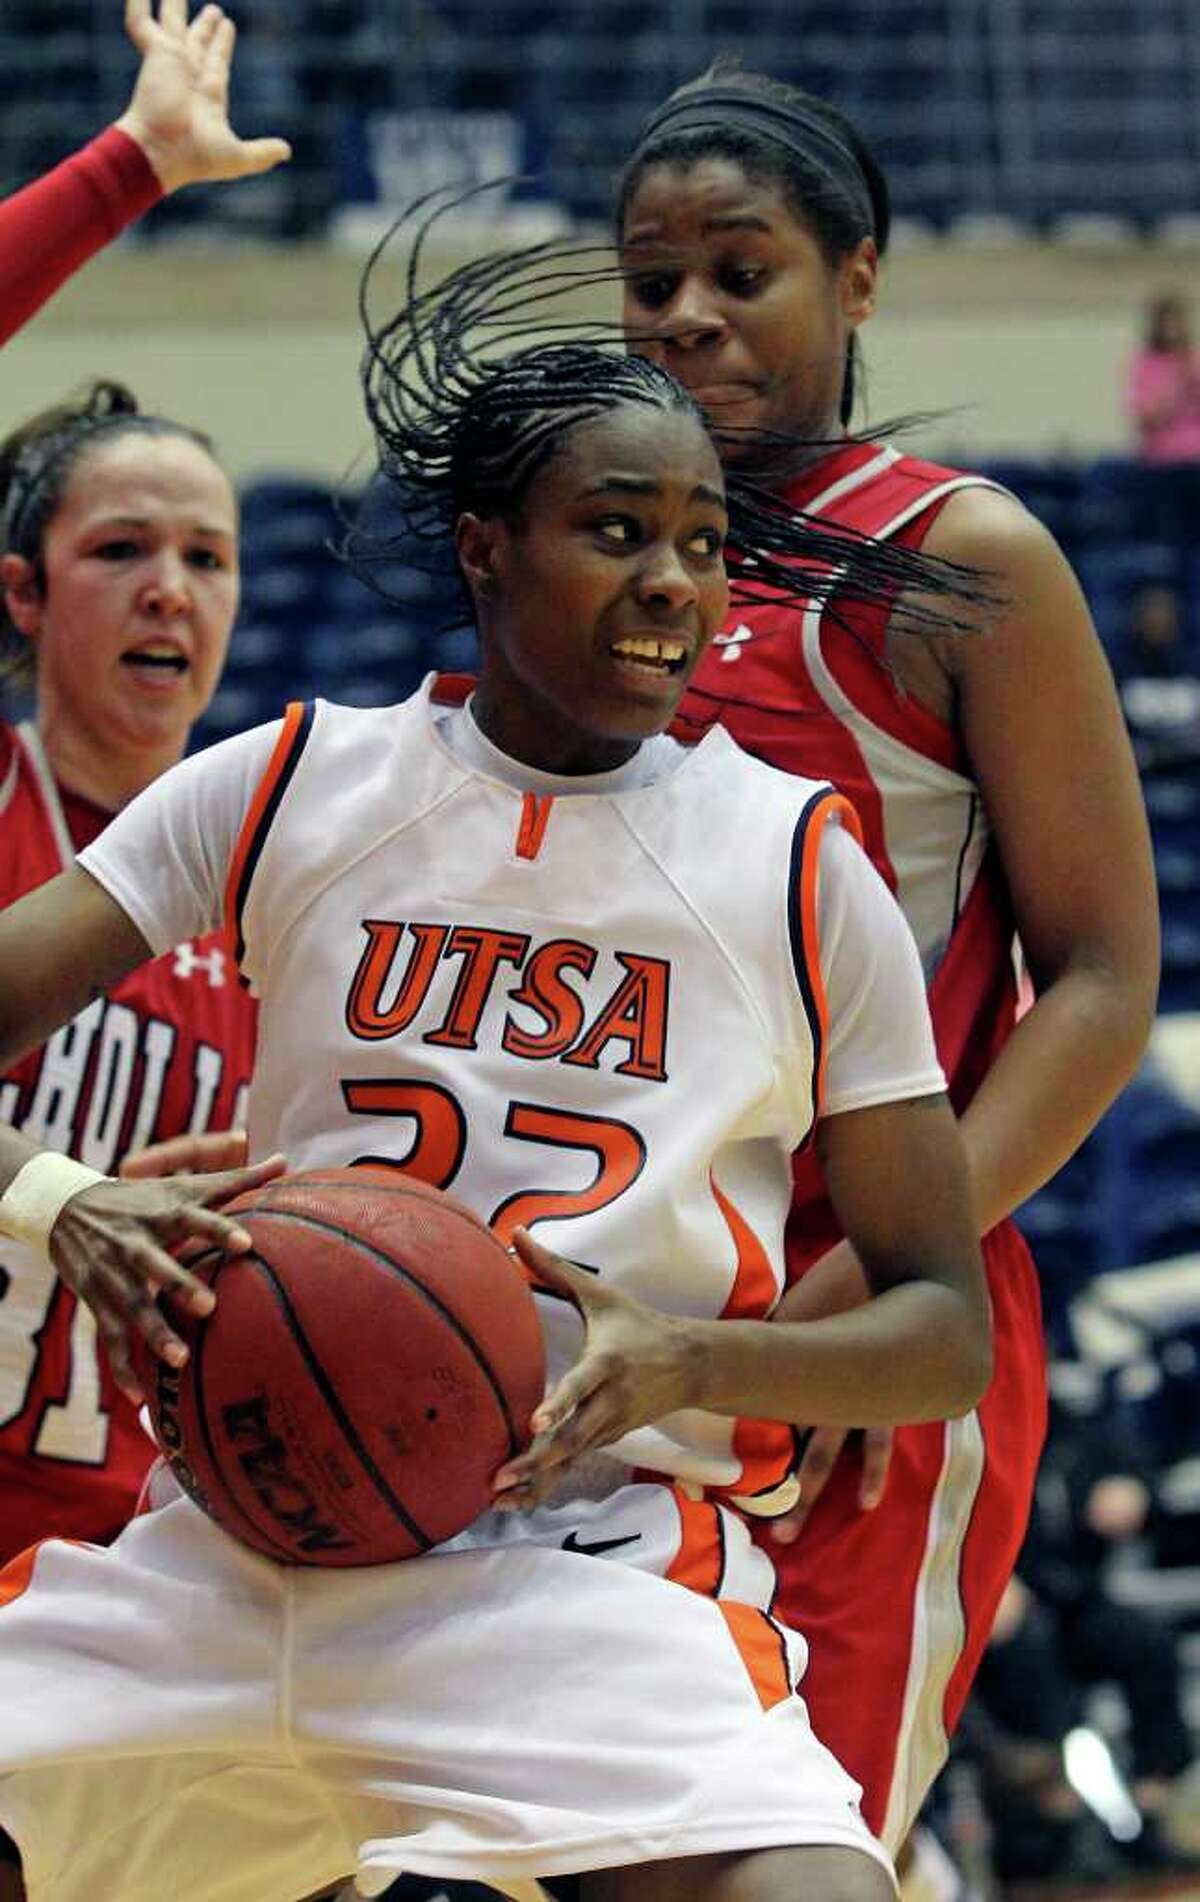 Roadrunners forward Ashley Gardner pivots under the hoop as the UTSA women play Nicholls at the UTSA Convocation Center on Saturday, Feb. 19, 2011.